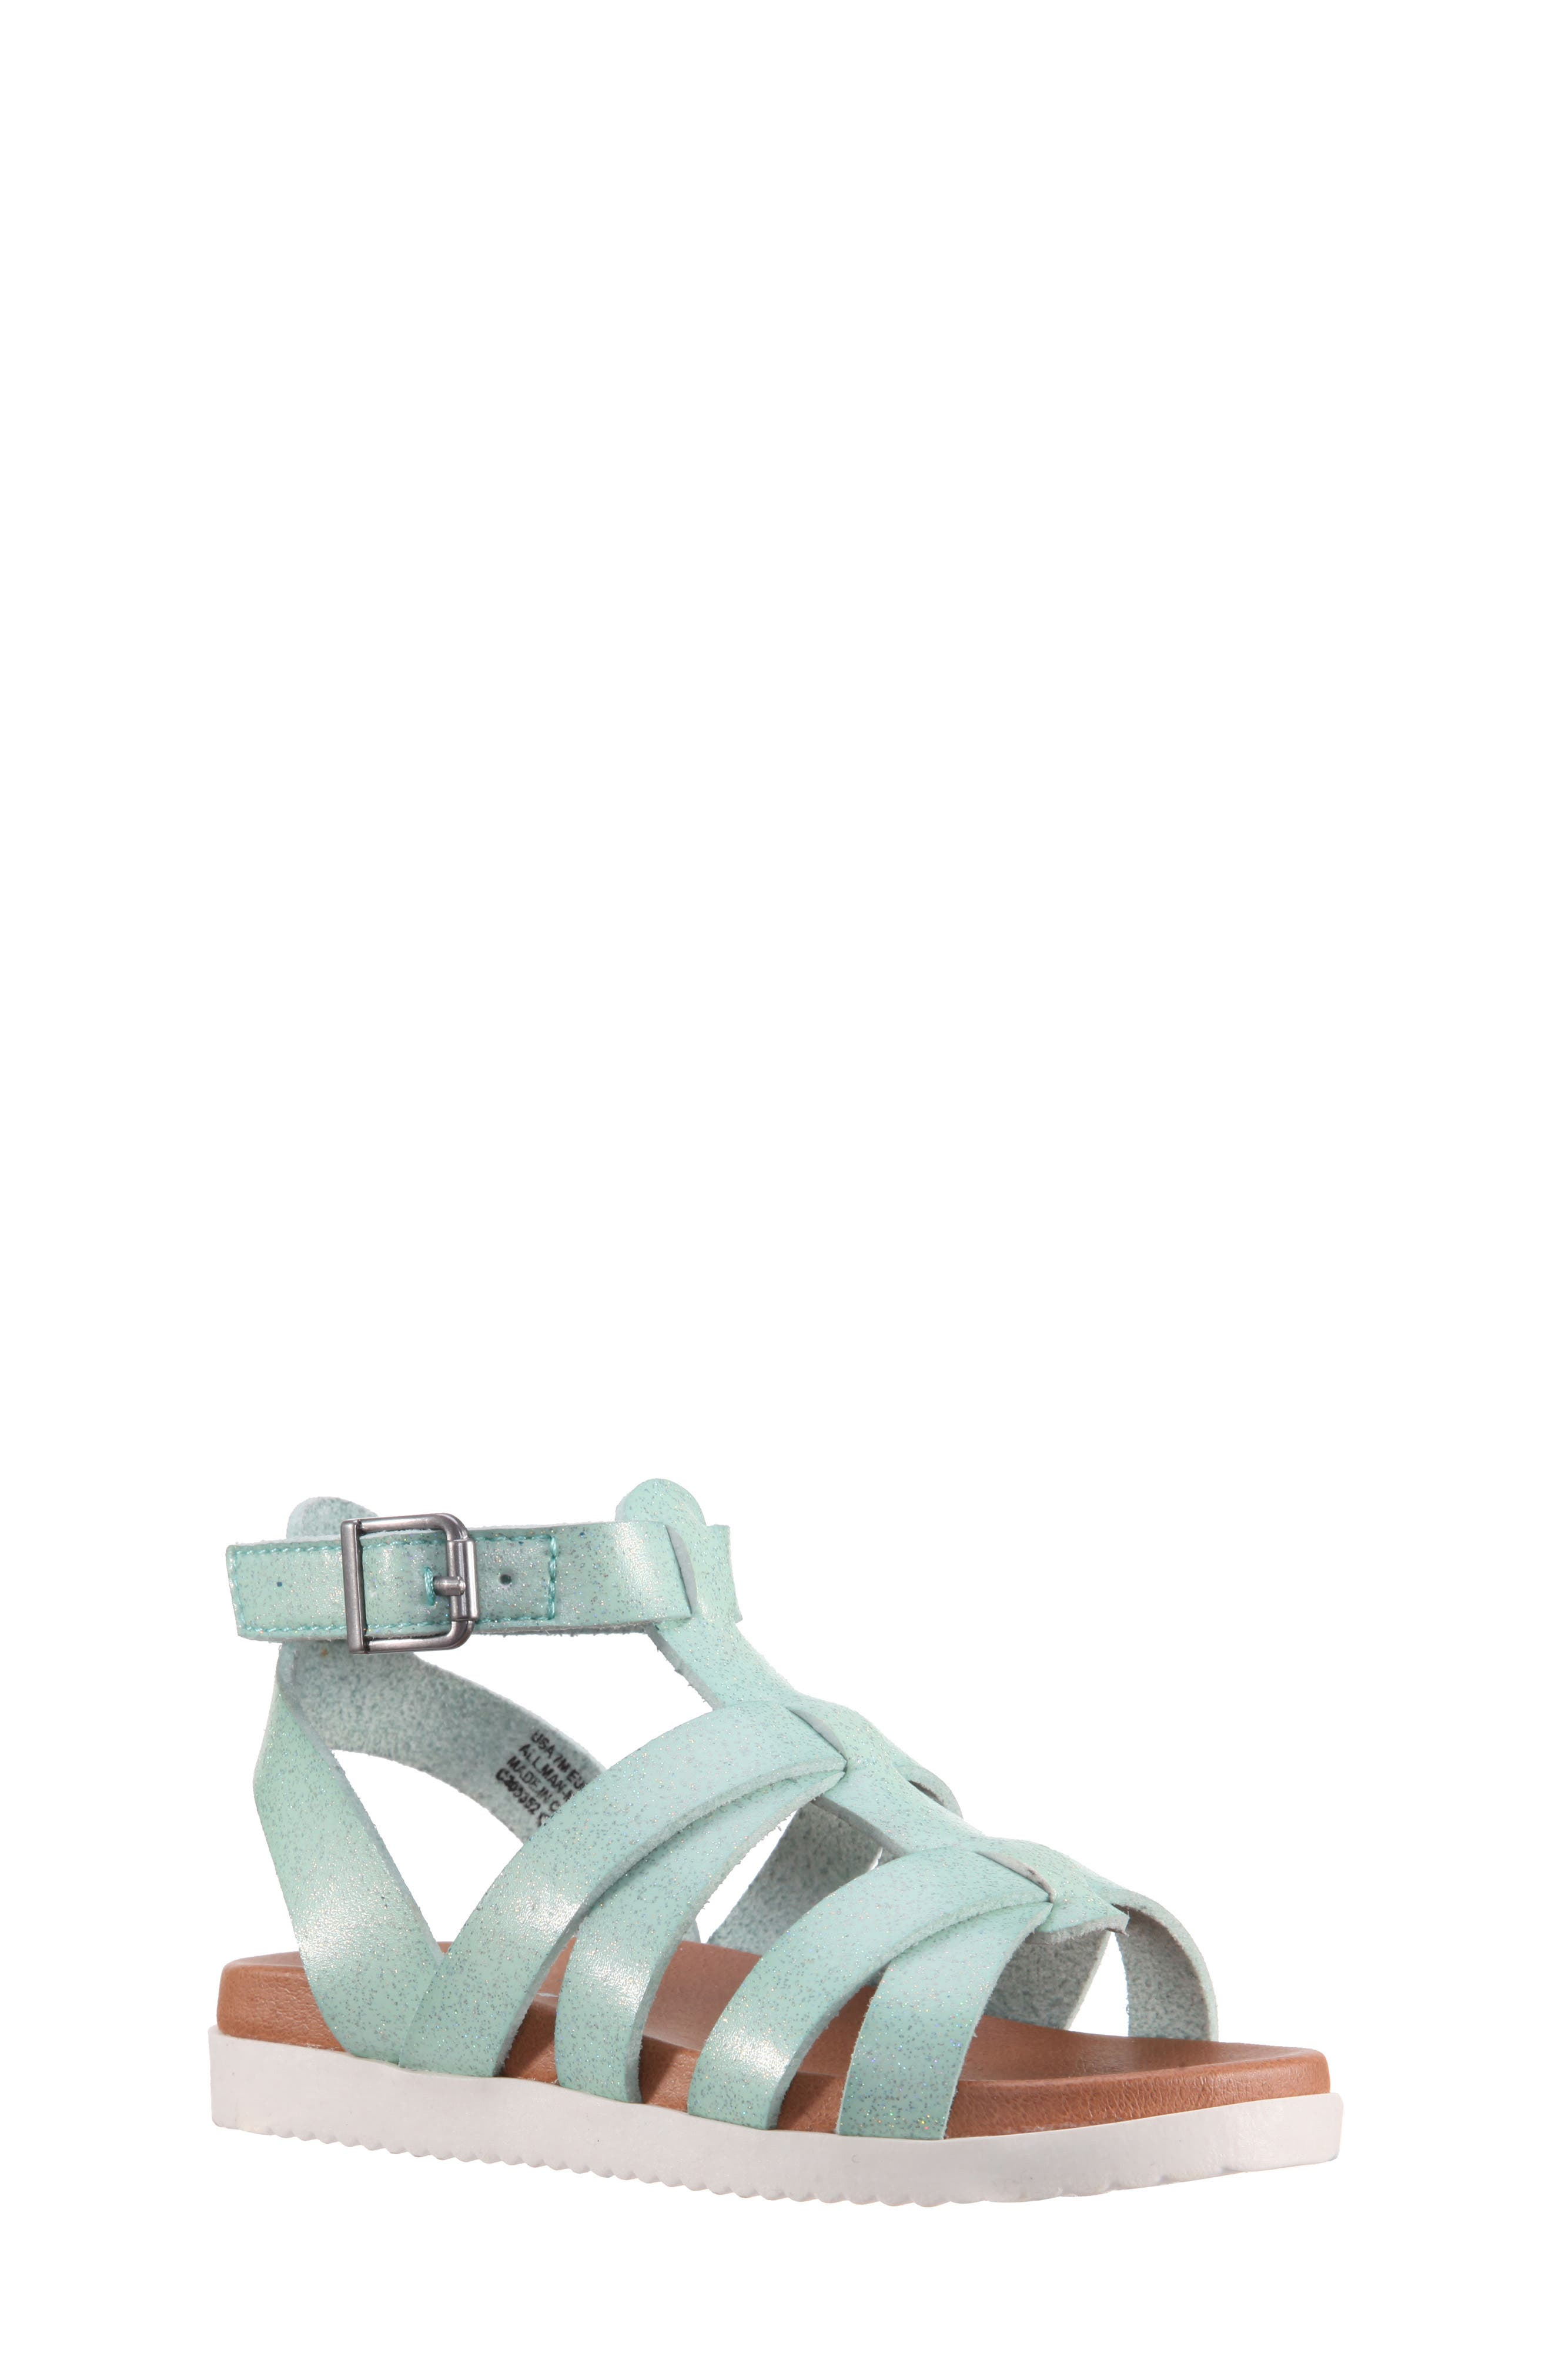 Alpha Gladiator Sandal,                         Main,                         color, 365